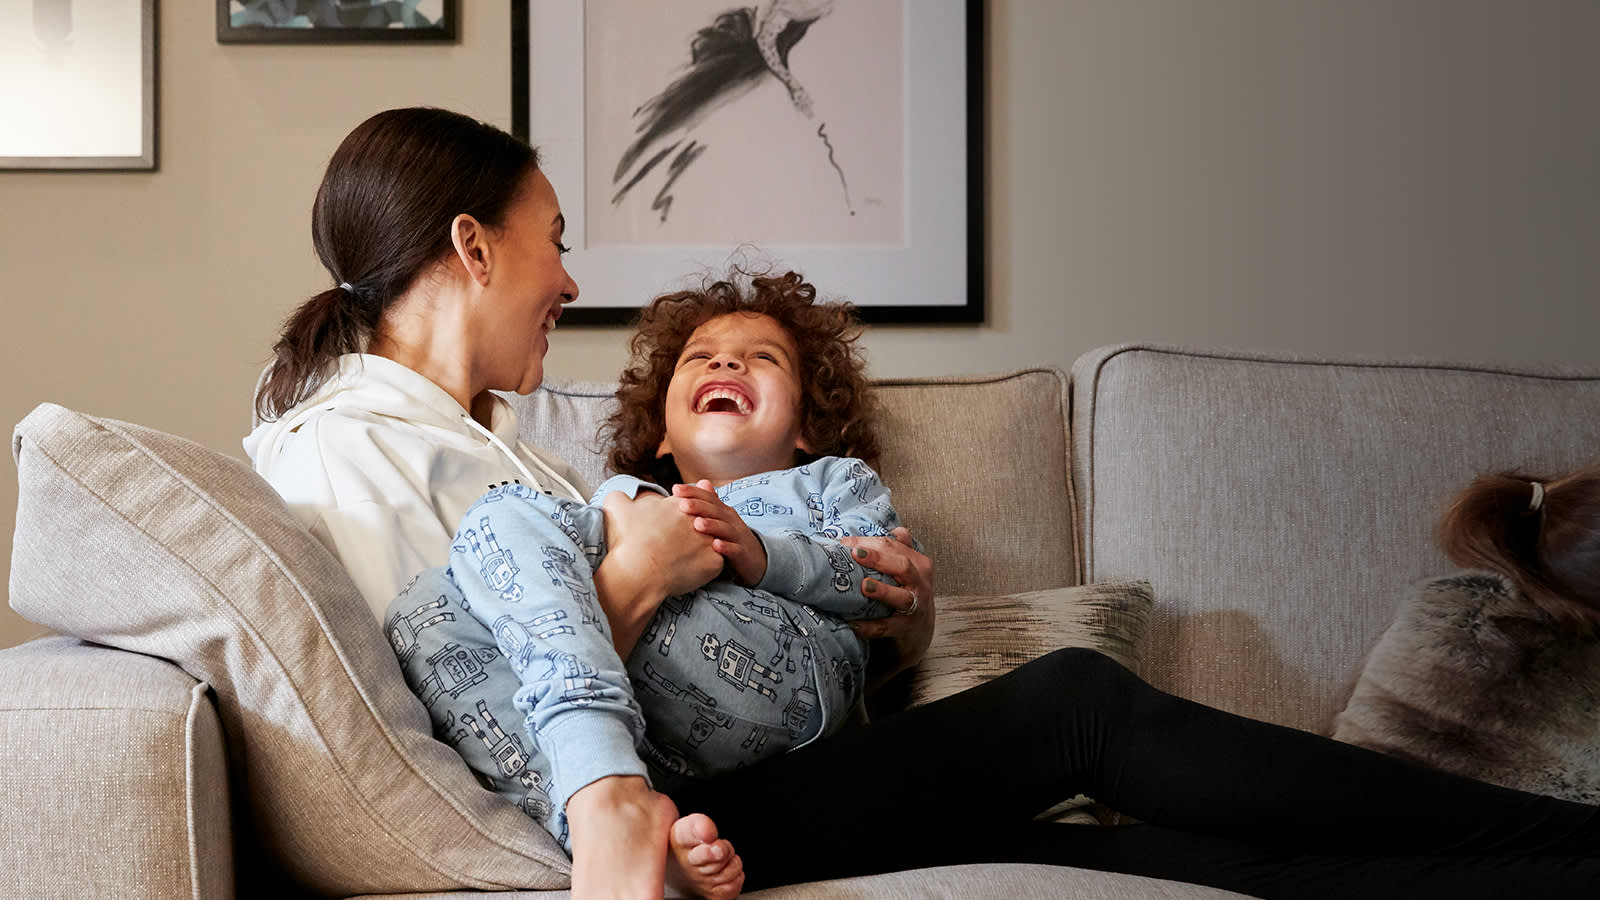 Mother and child laughing on a sofa